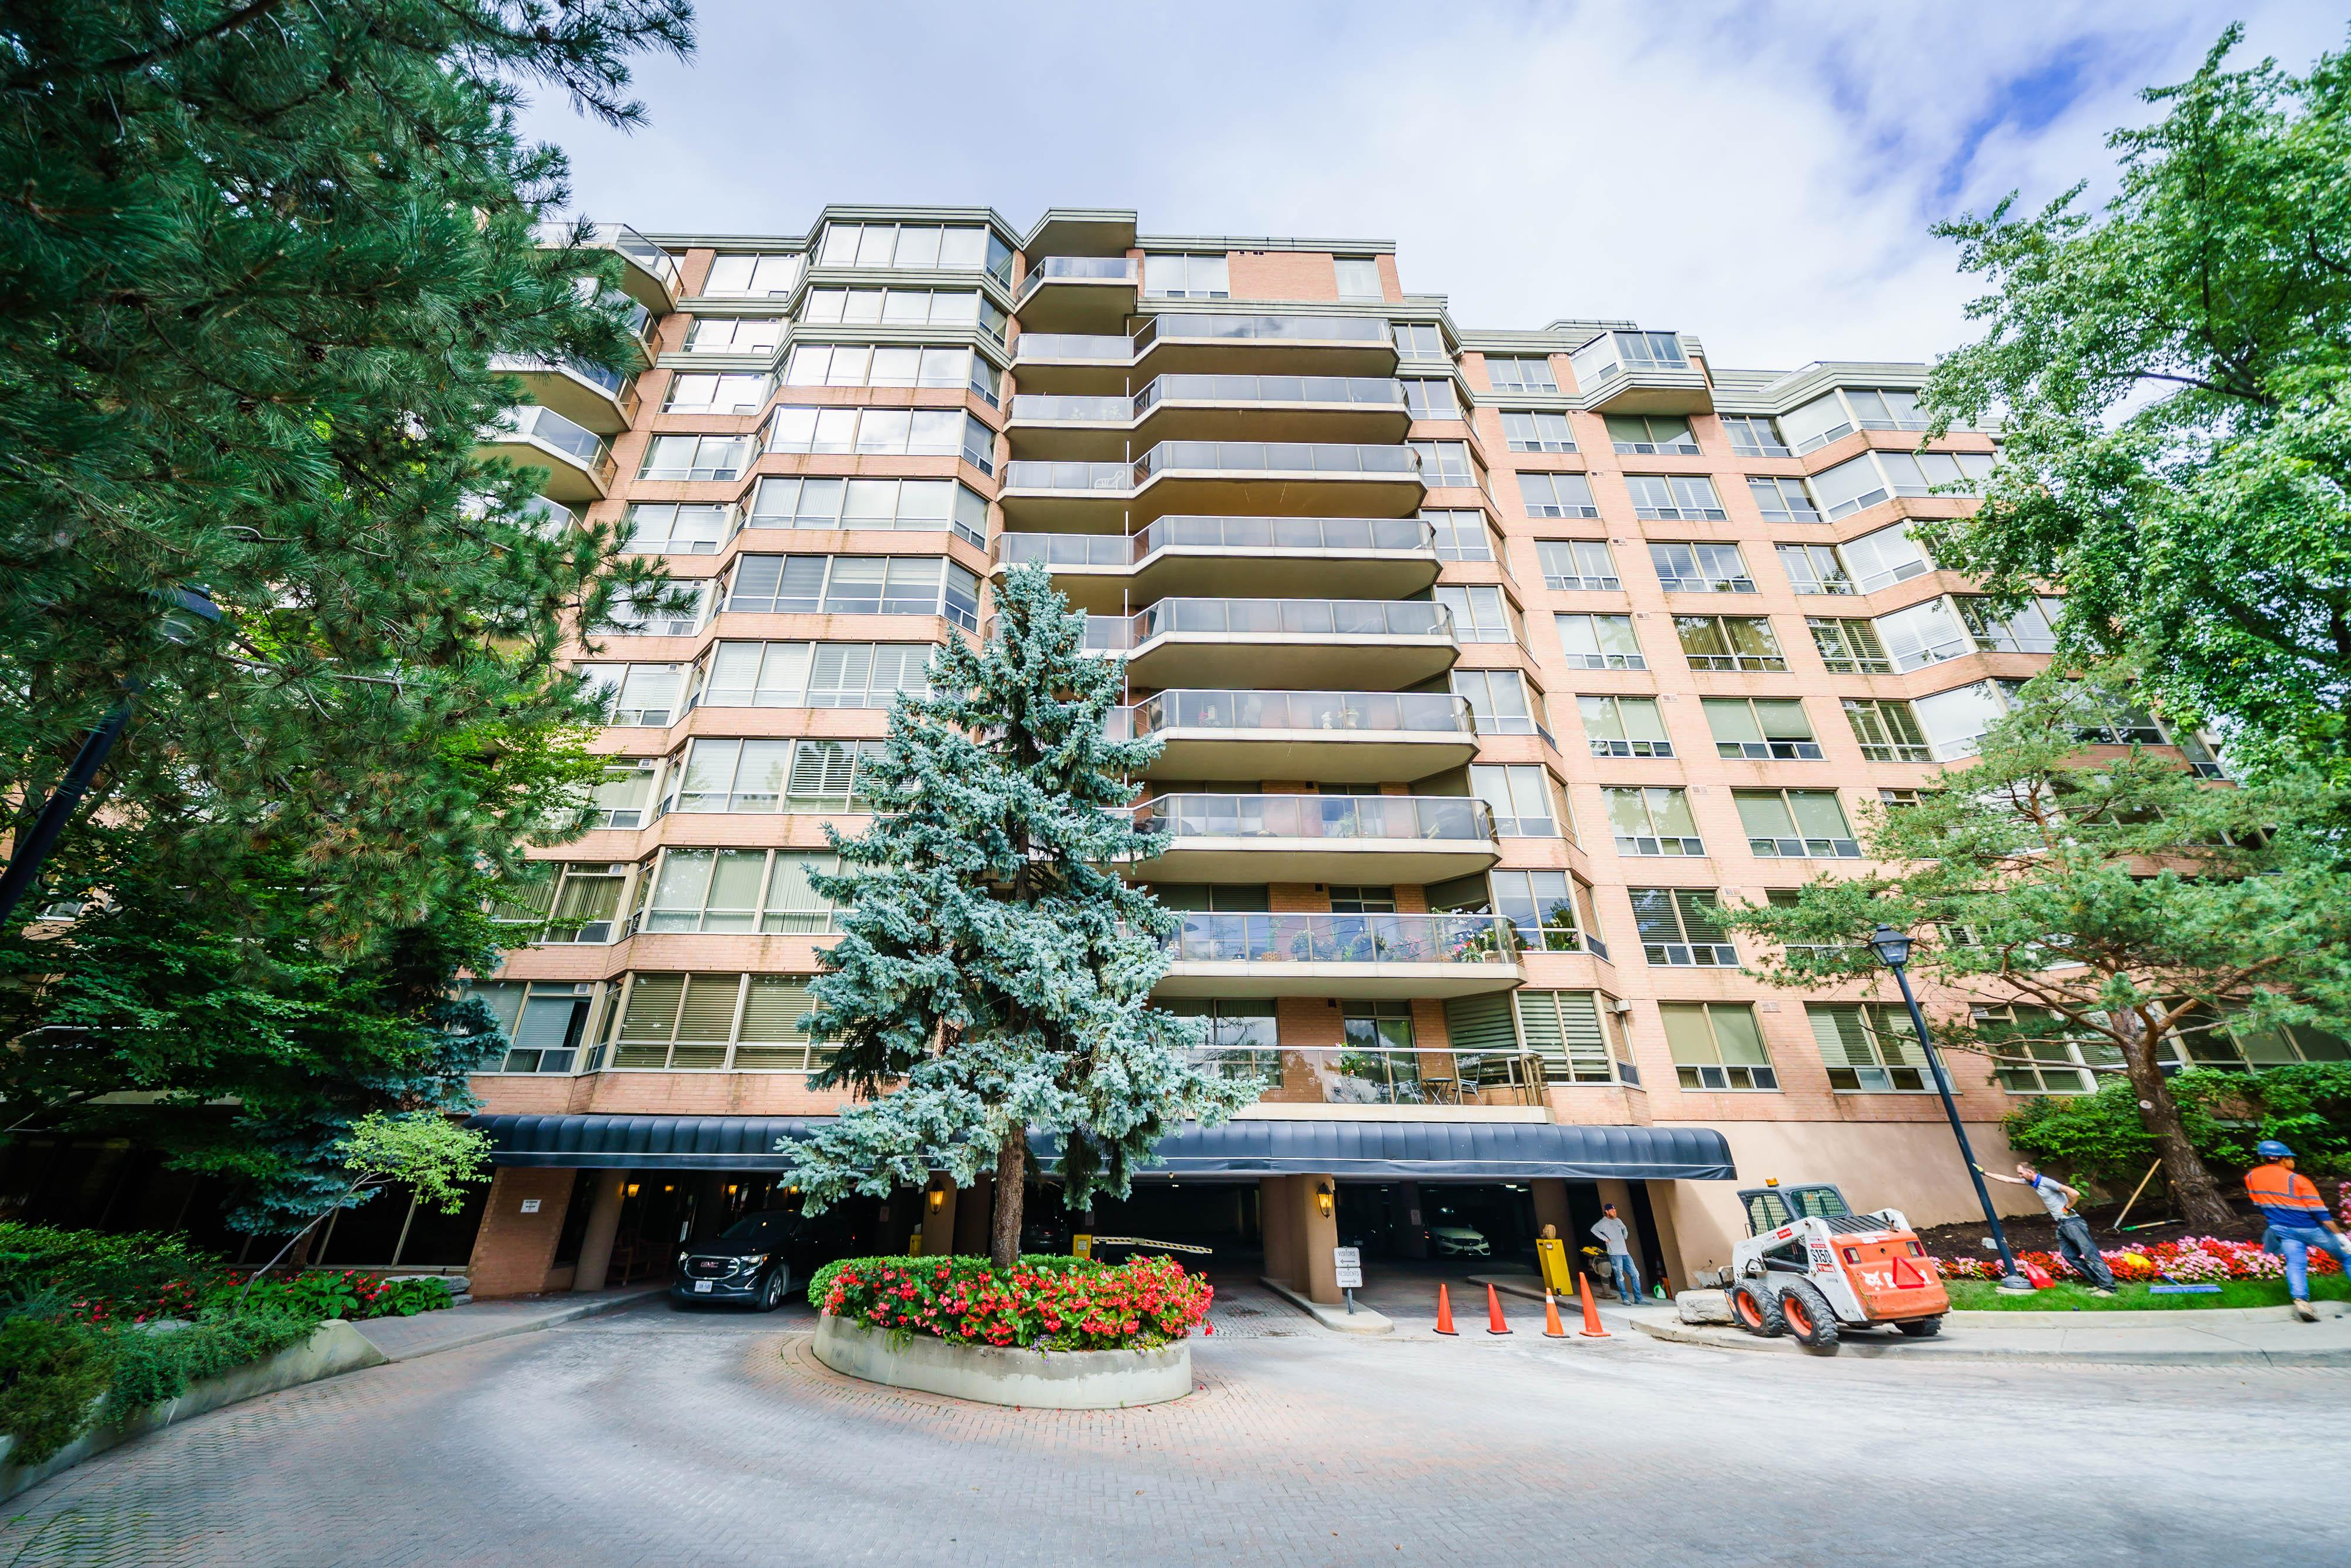 314 - 3181 Bayview Avenue, Bayview Woods-Steeles, Toronto